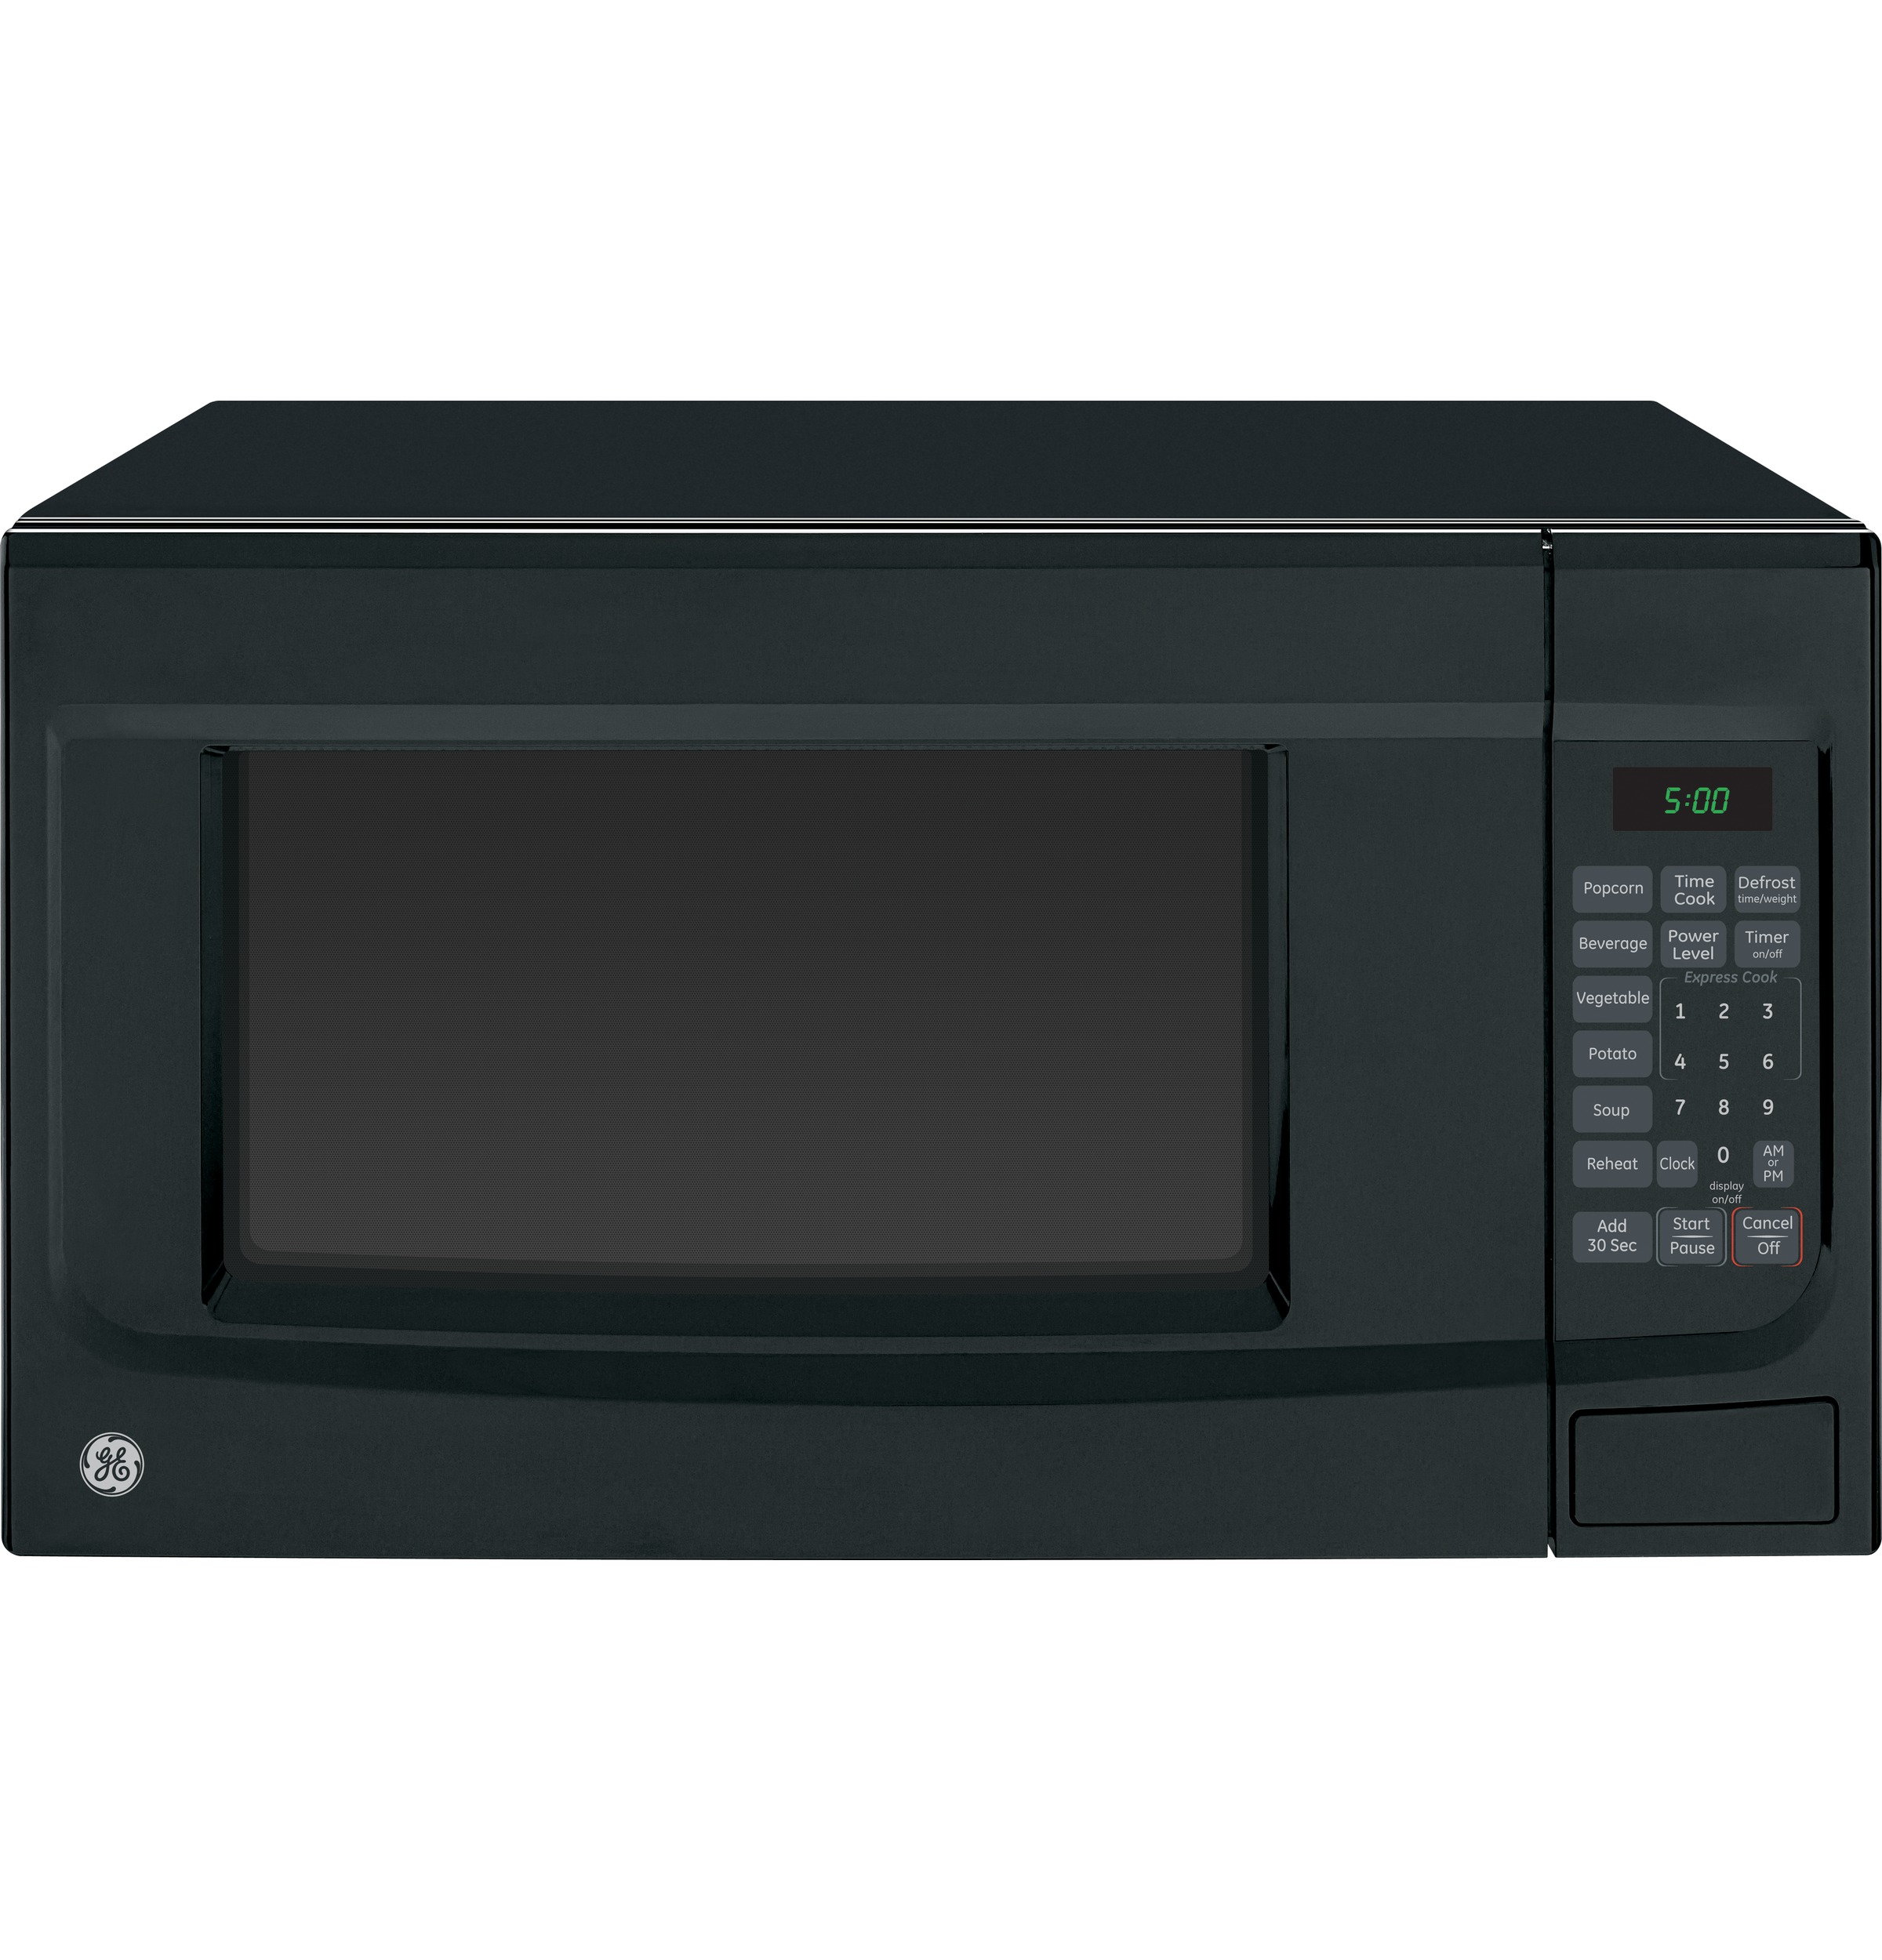 Countertop Microwave Dimensions : GE? 1.4 Cu. Ft. Countertop Microwave Oven JES1451DSBB GE ...